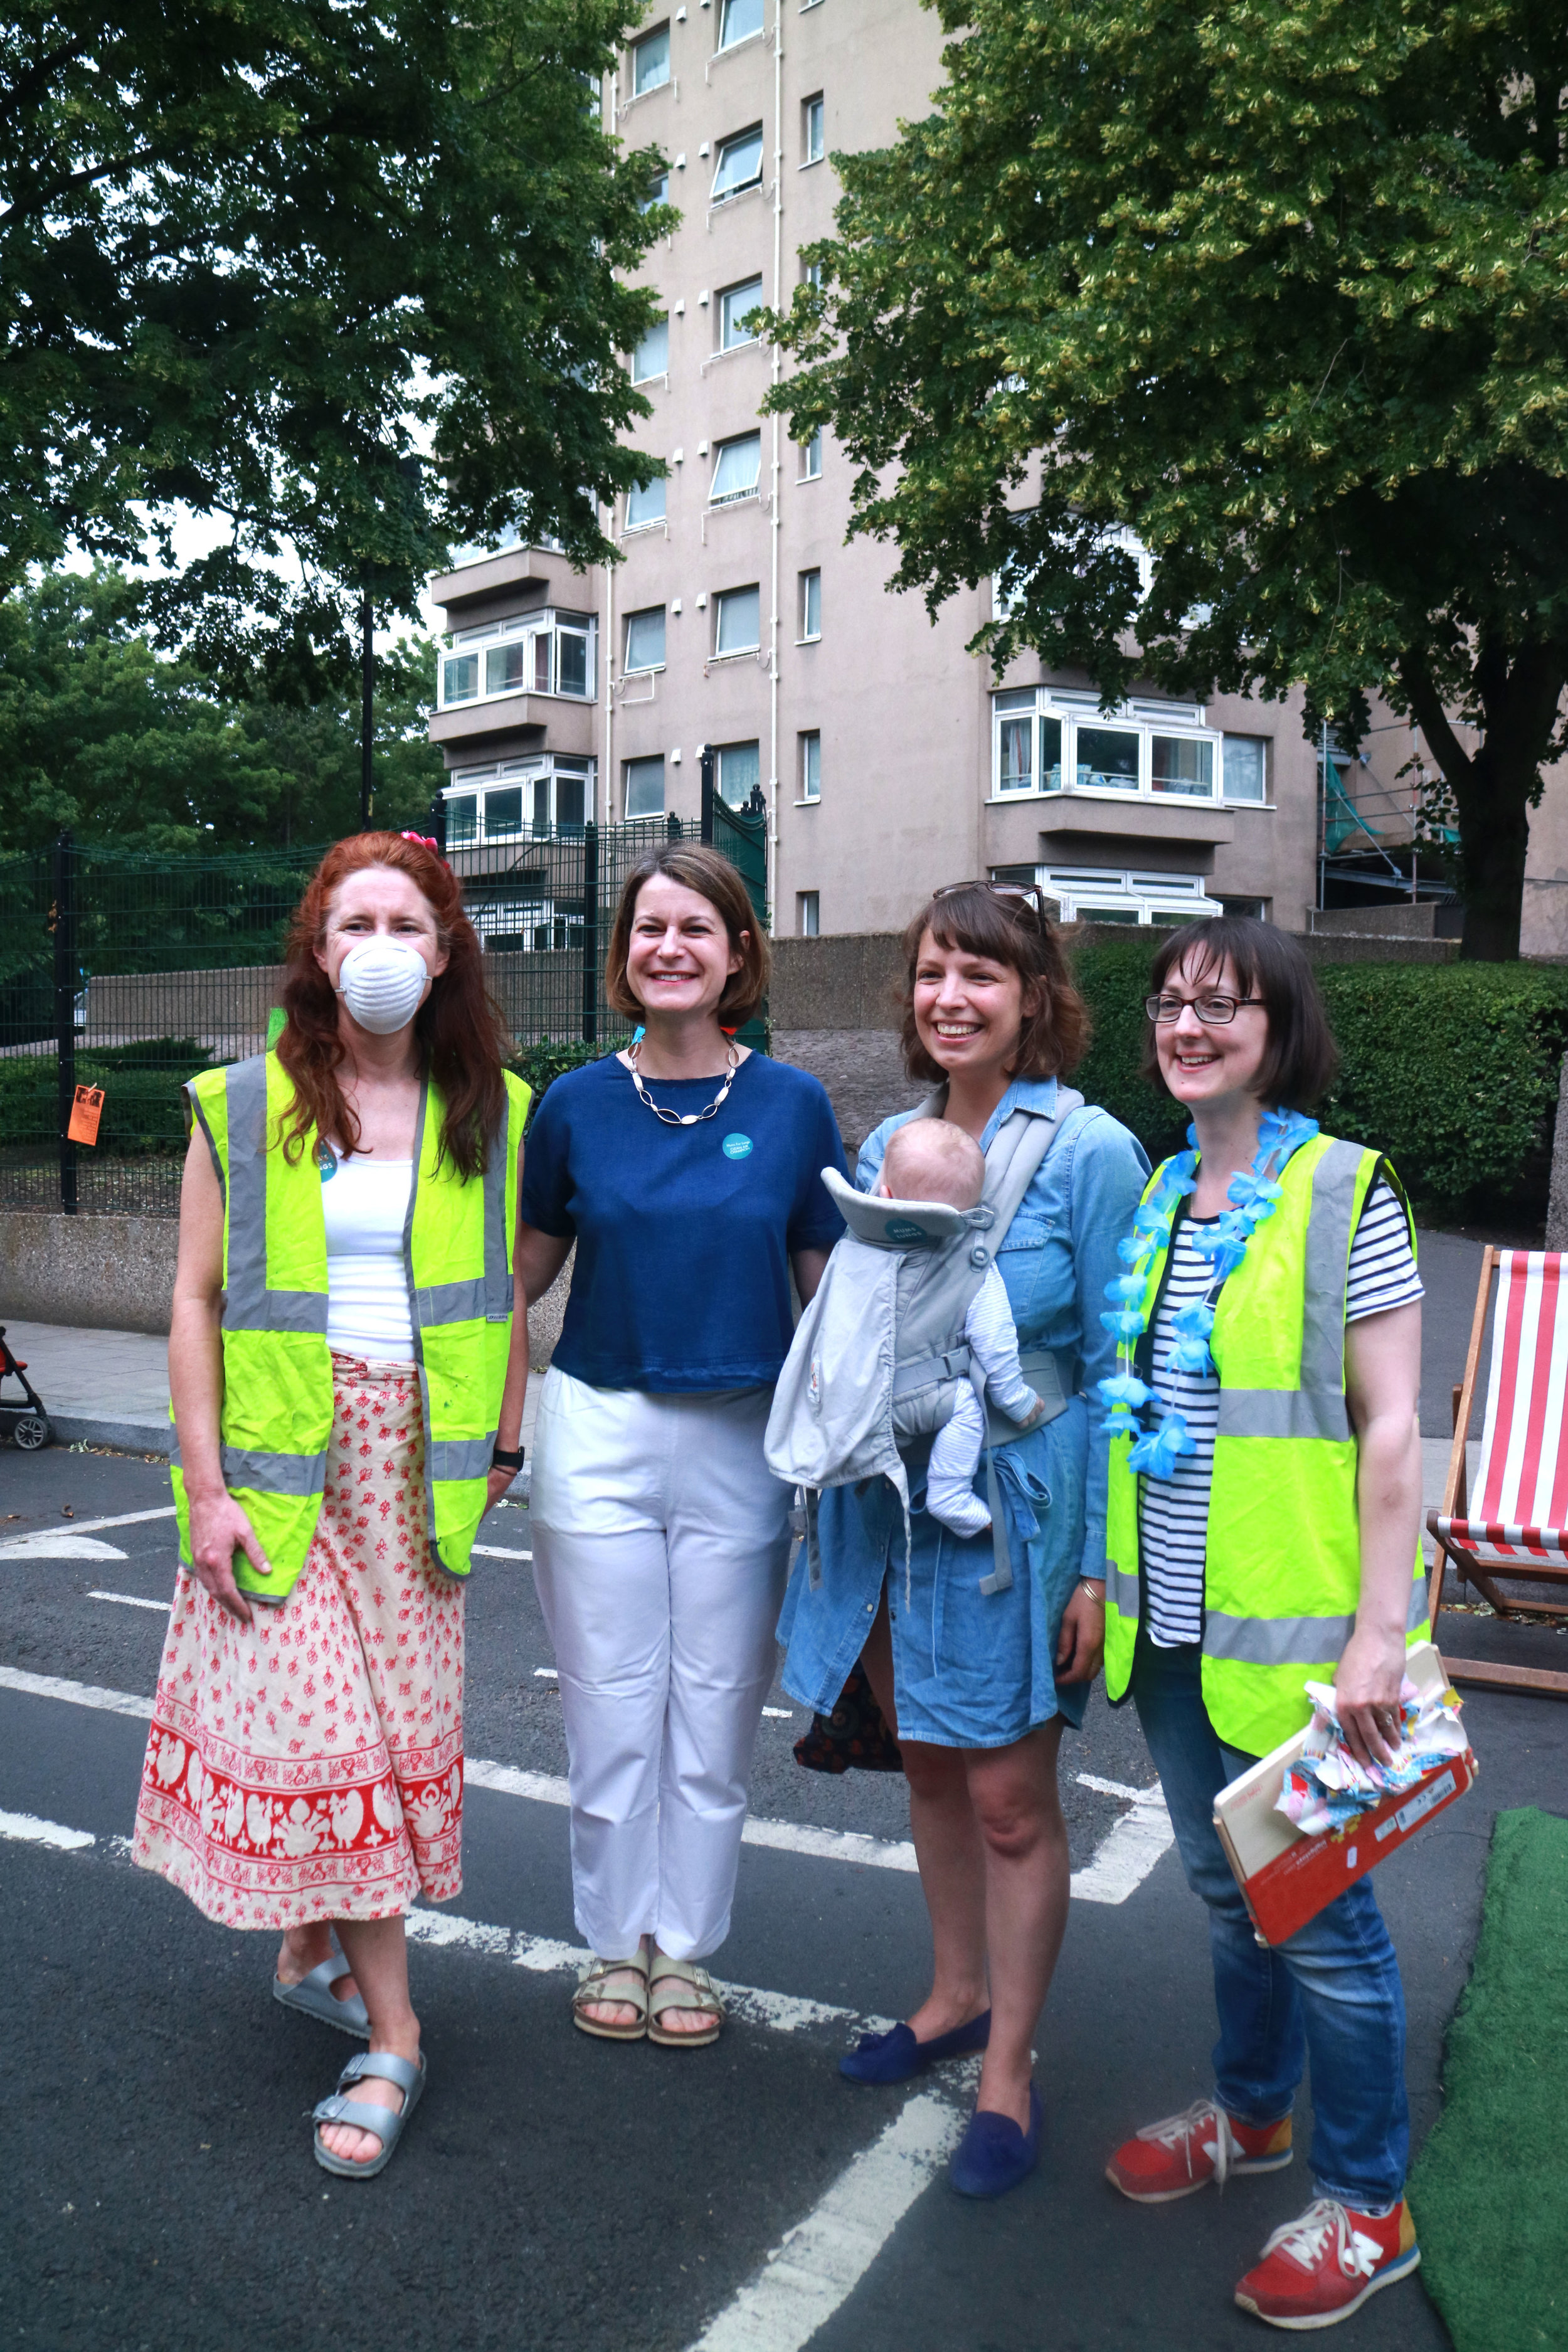 MP for Dulwich and West Norwood Helen Hayes attended our Clean Air Street party in June 2019